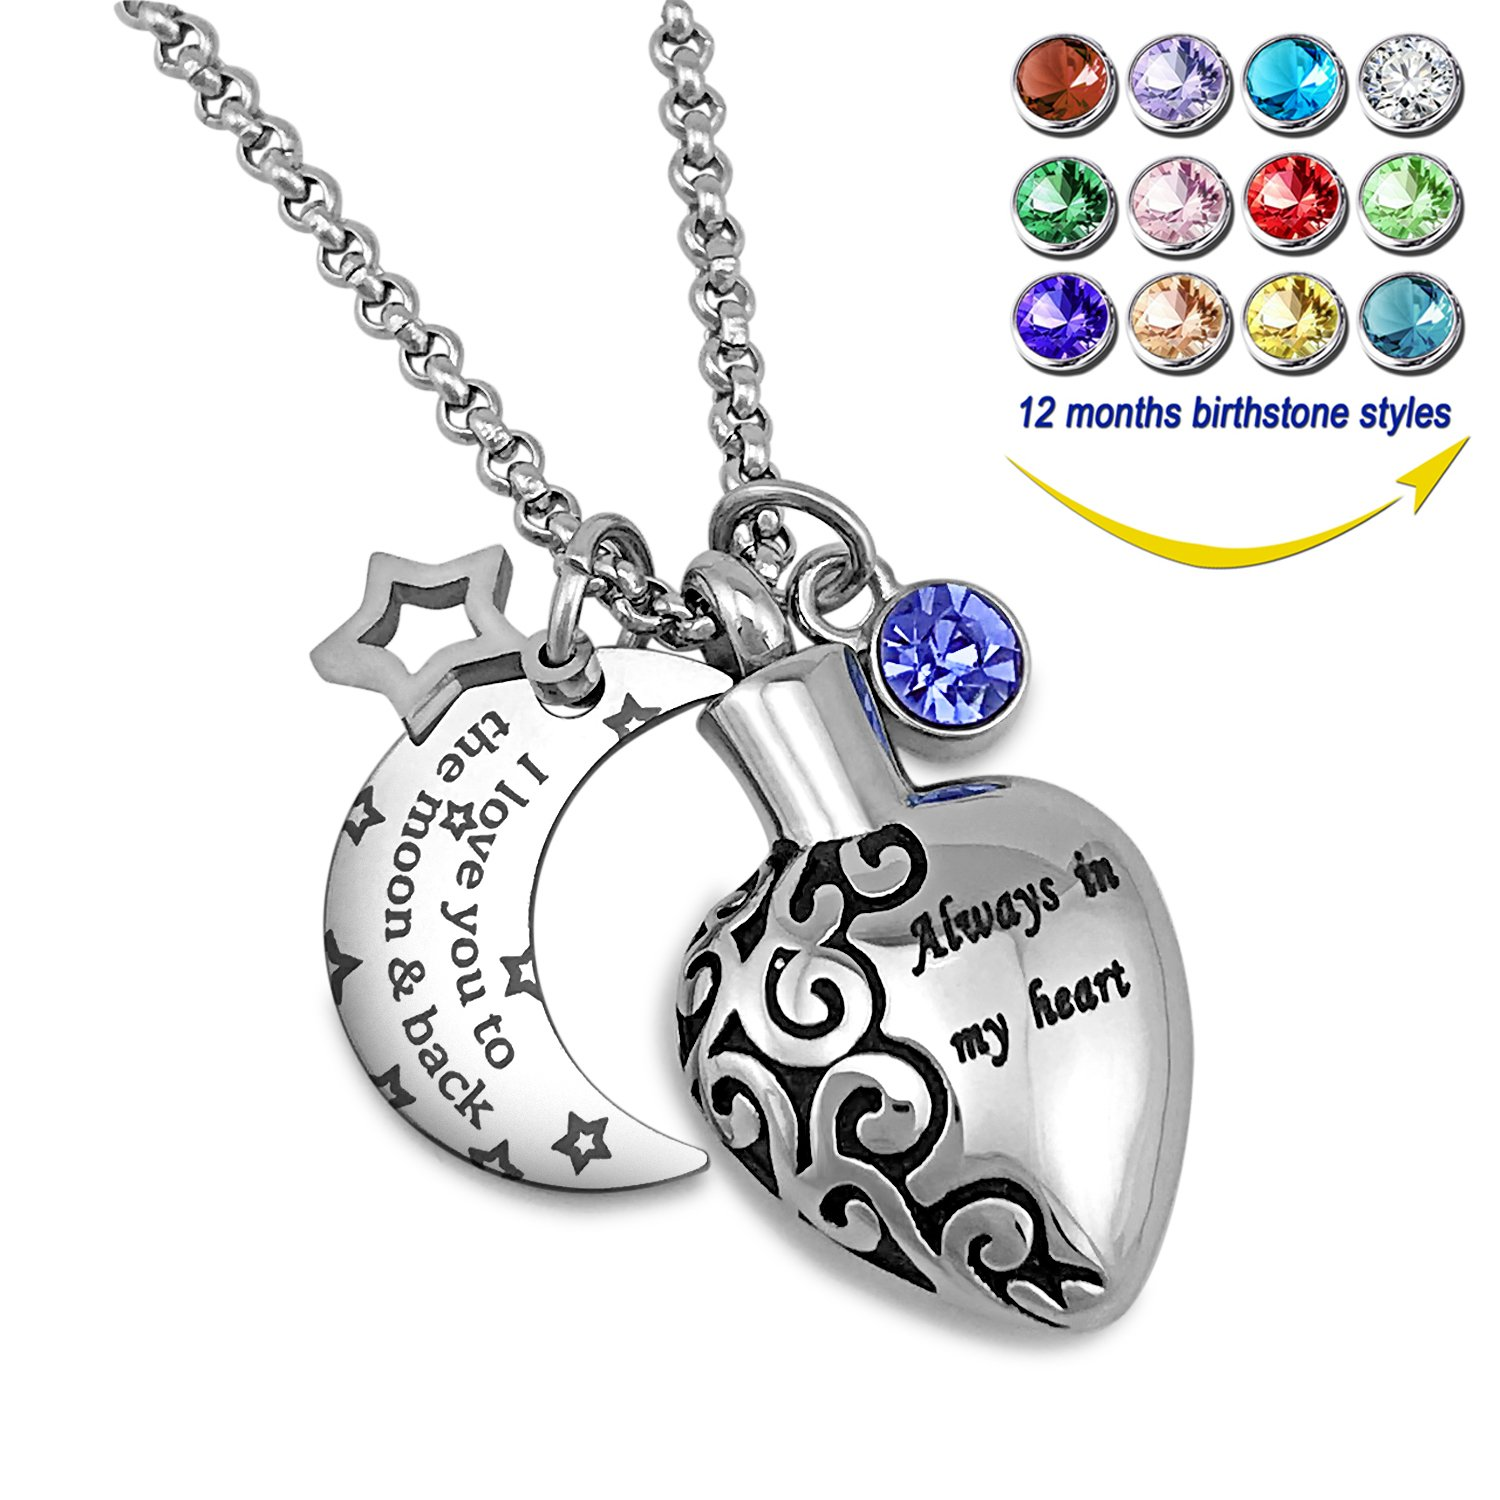 YOUFENG Urn Necklaces for Ashes Always in My Heart Love You to The Moon and Back 12 Birthstones Styles Necklace (December Birthstone URN Necklace) by YOUFENG (Image #1)